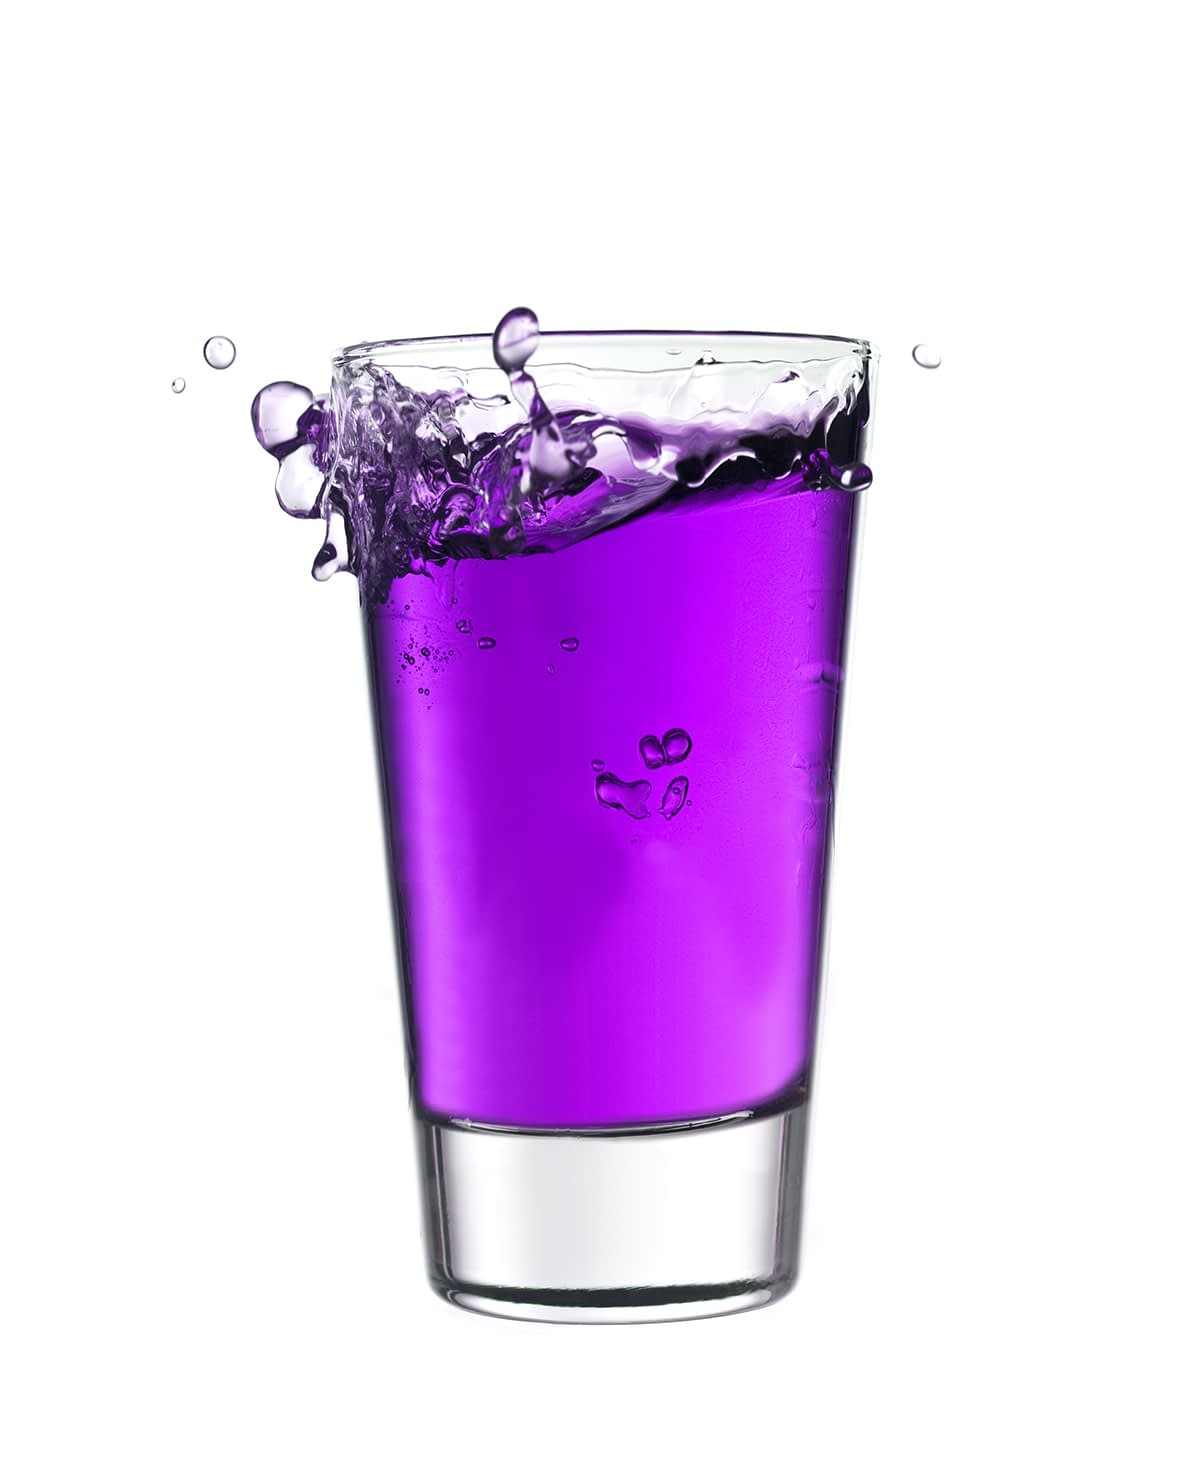 Glass of purple liquid brings up the question what is purple drank